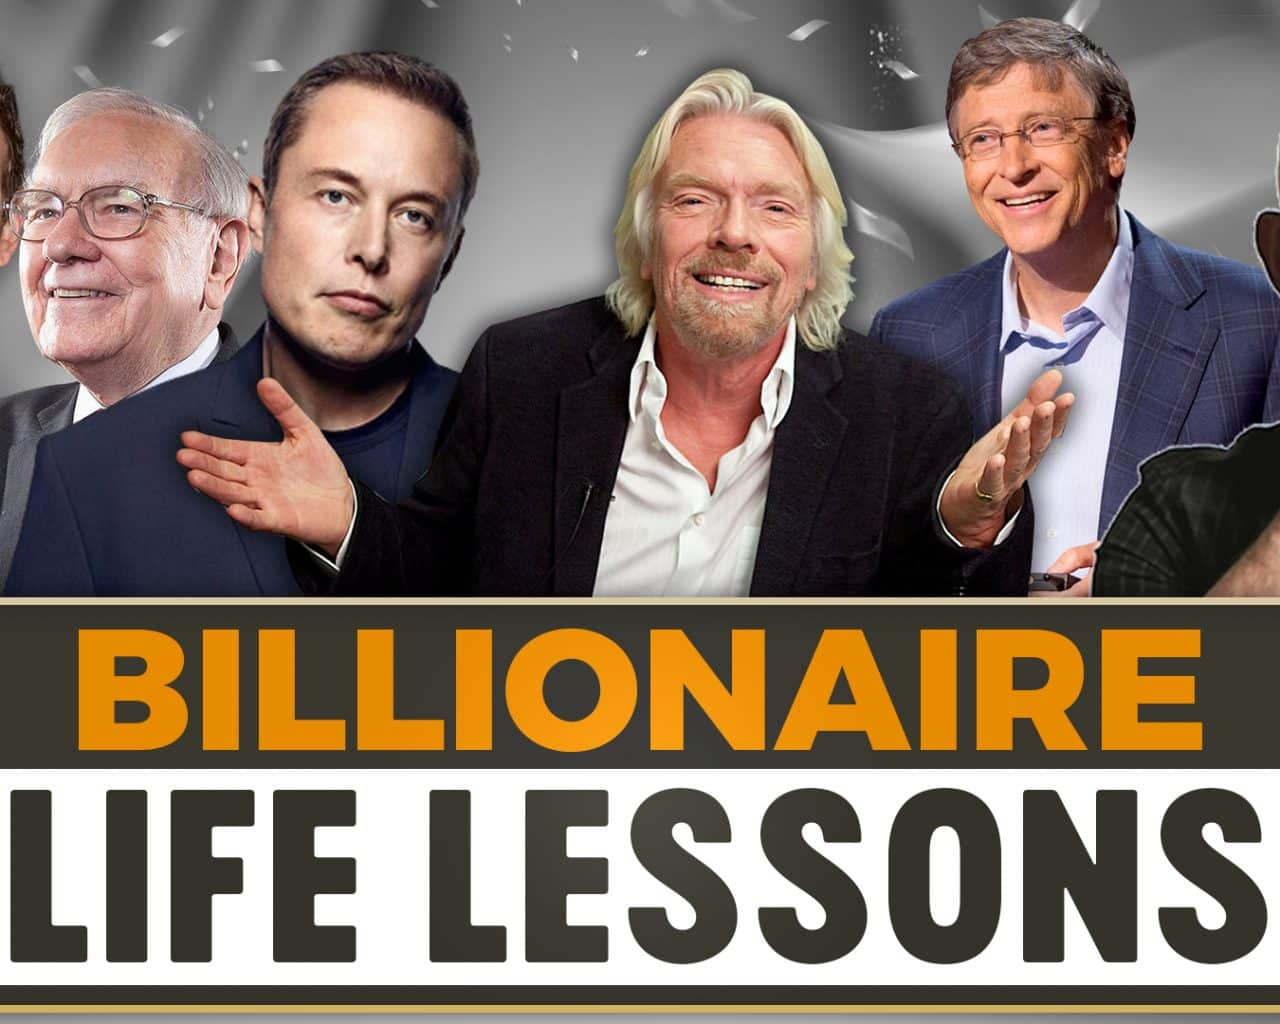 A Dying Billionaires Reflection on Life, Happiness, and Purpose...